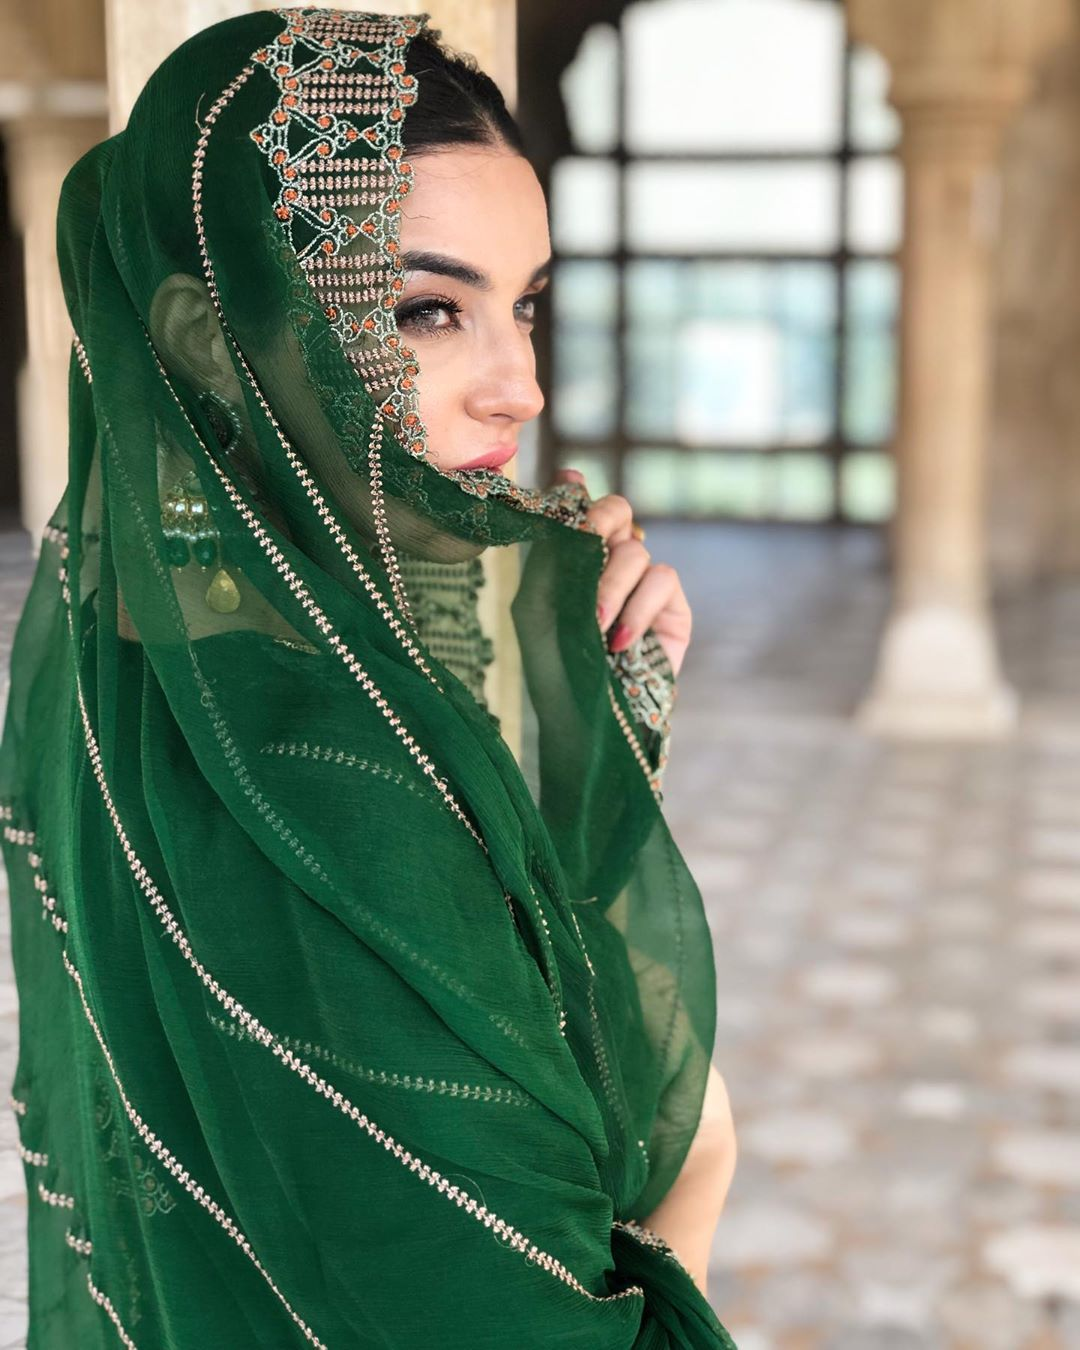 New Awesome Pictures of Sadia Khan